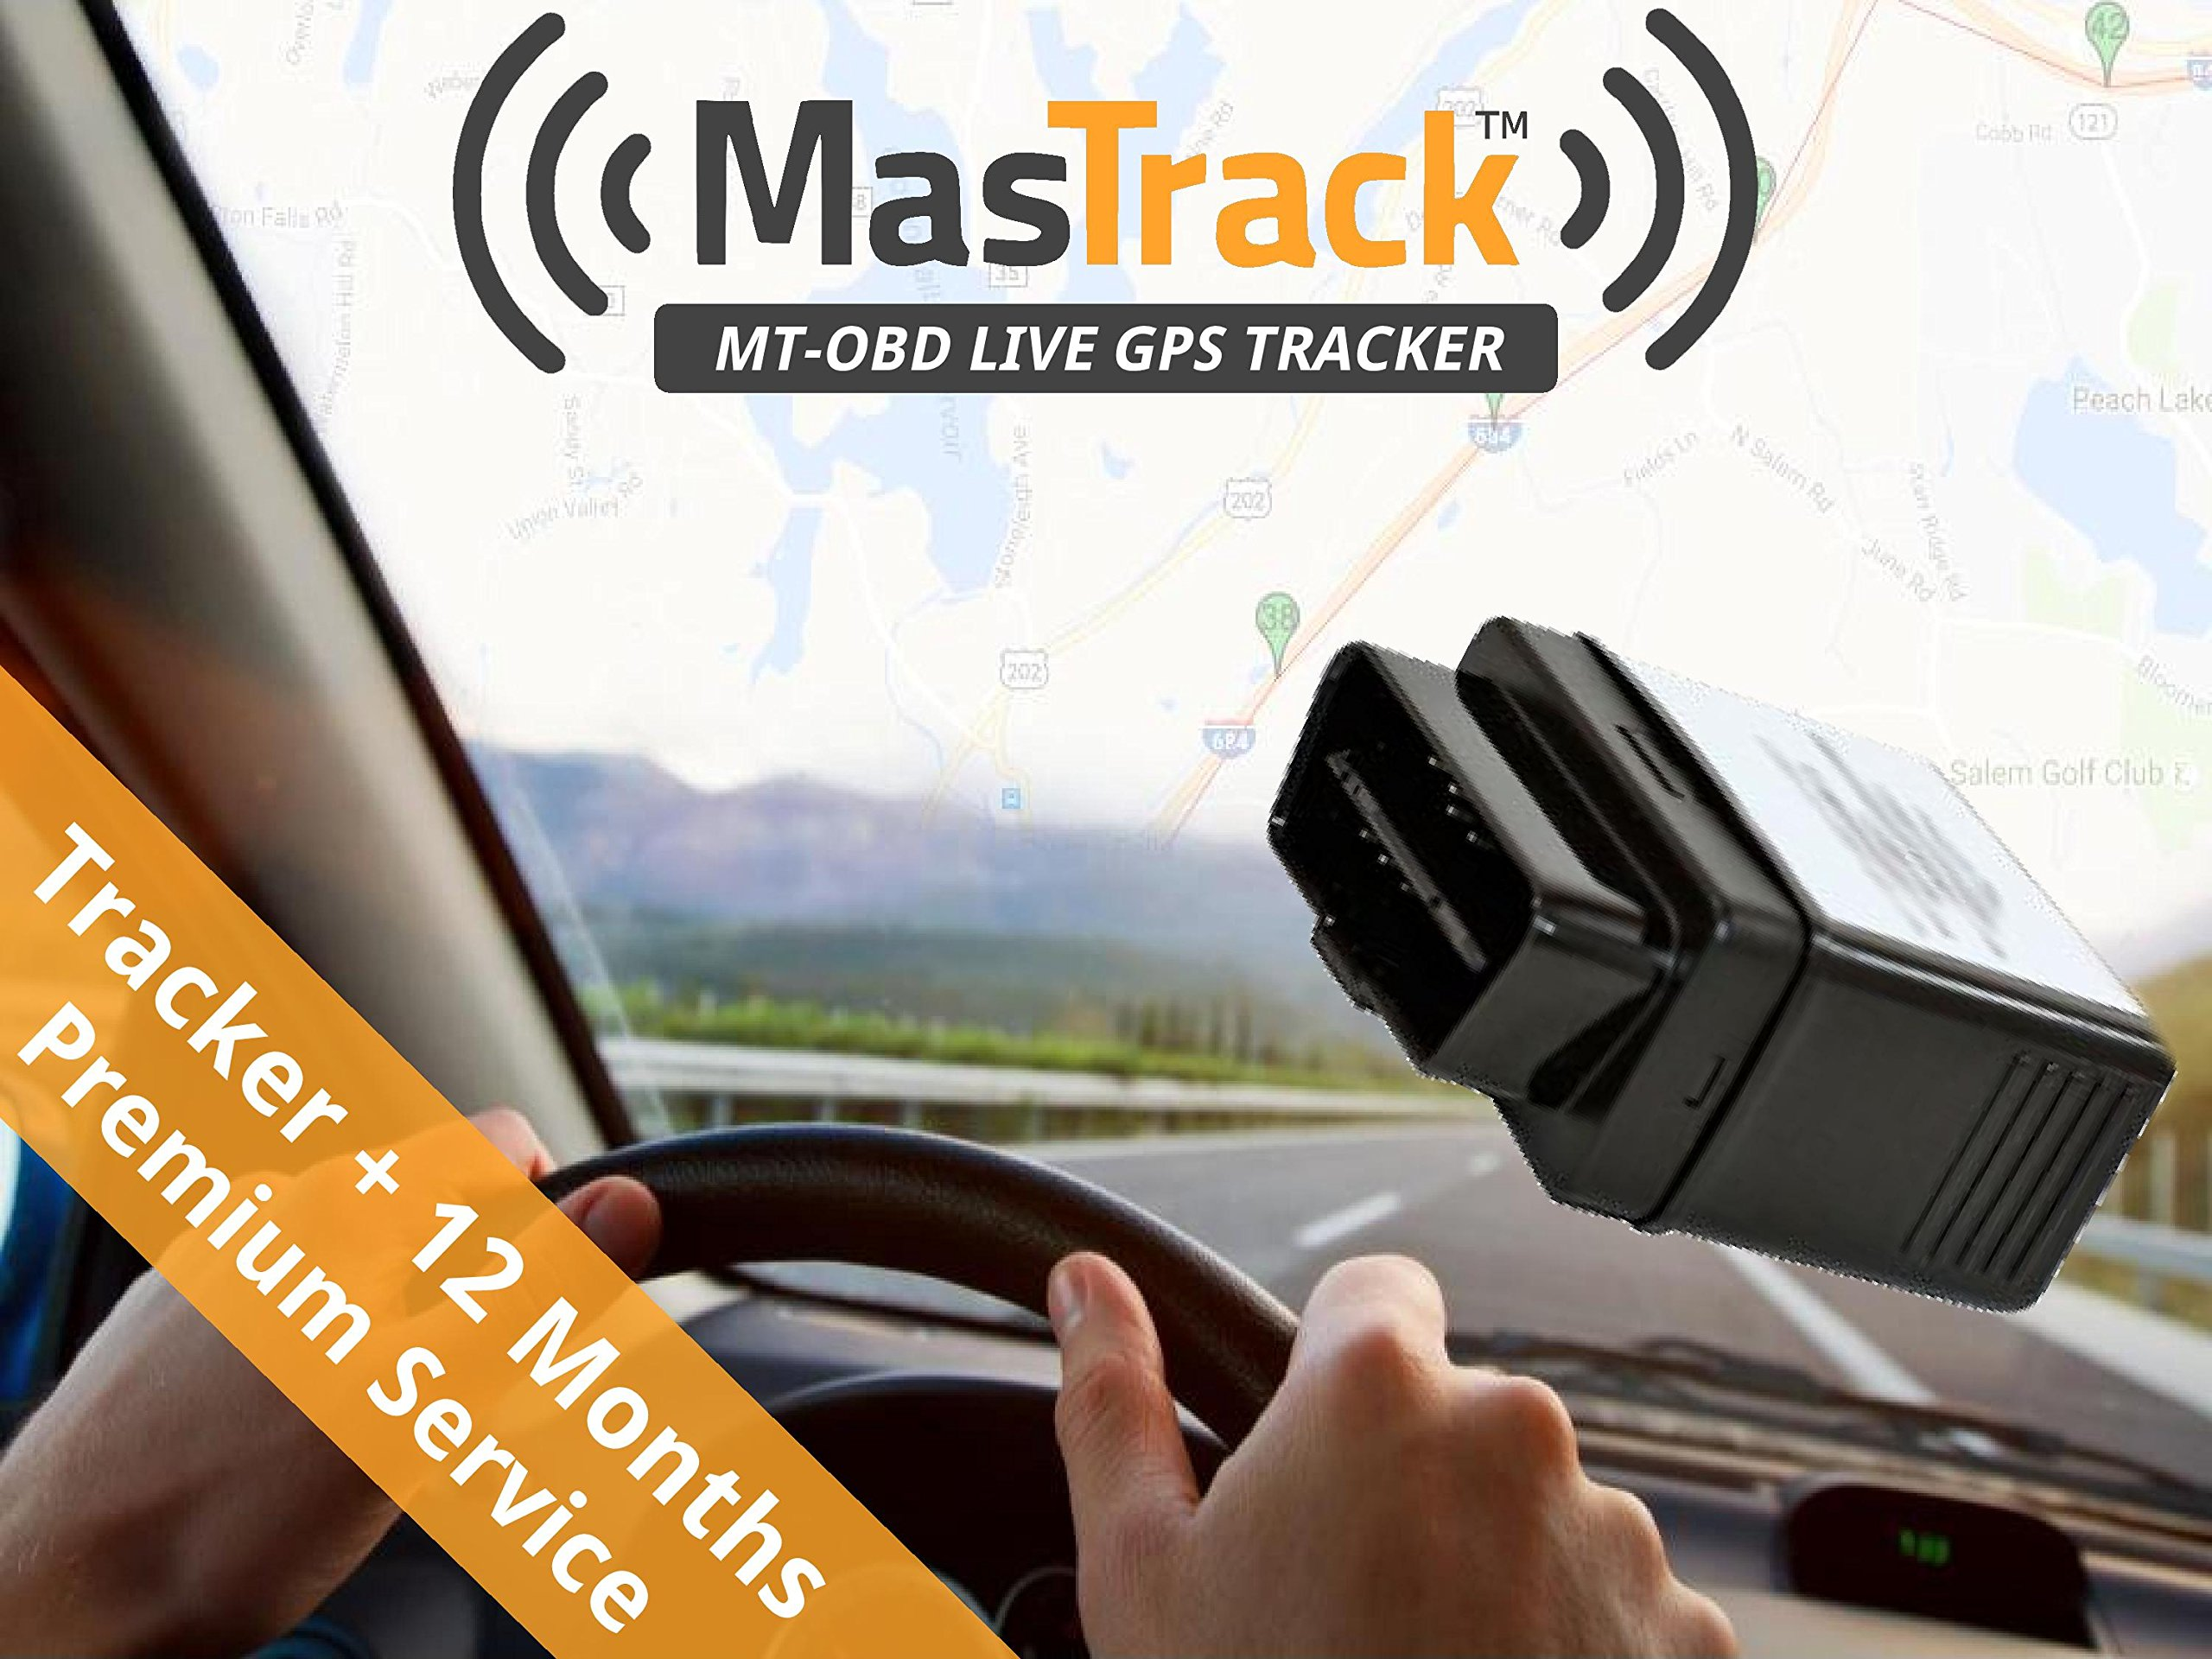 MasTrack OBD Real Time GPS Vehicle Tracker with 12 Months of Premium Service by MasTrack